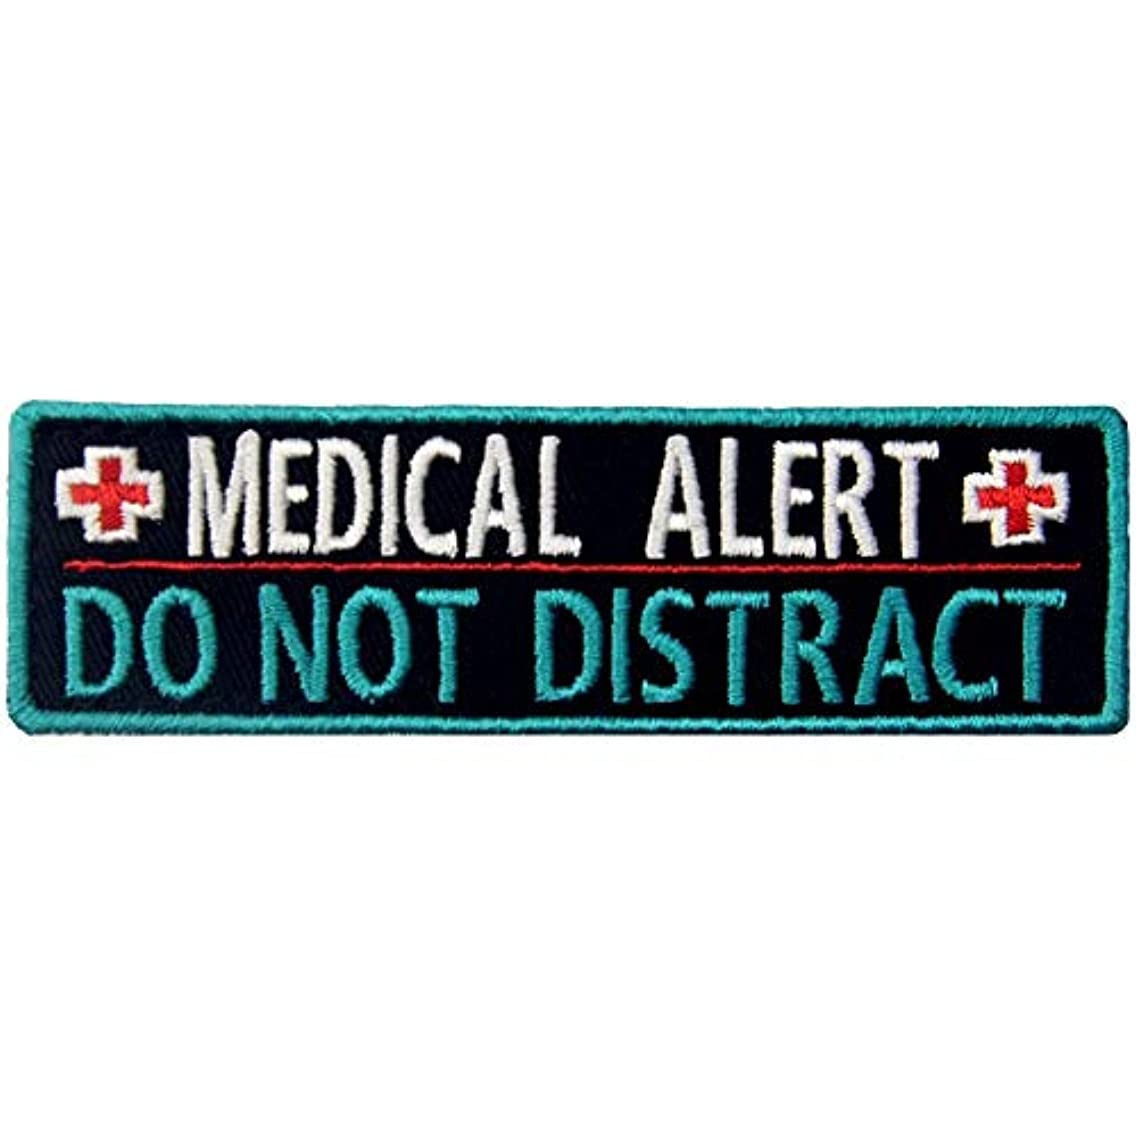 Service Dog Medical Alert Do Not Distract Patch Morale Tactical Vests/Harnesses Emblem Embroidered Applique Fastener Hook & Loop Pet Tags Patches for Small or Large Working Dogs (Medical Alert)